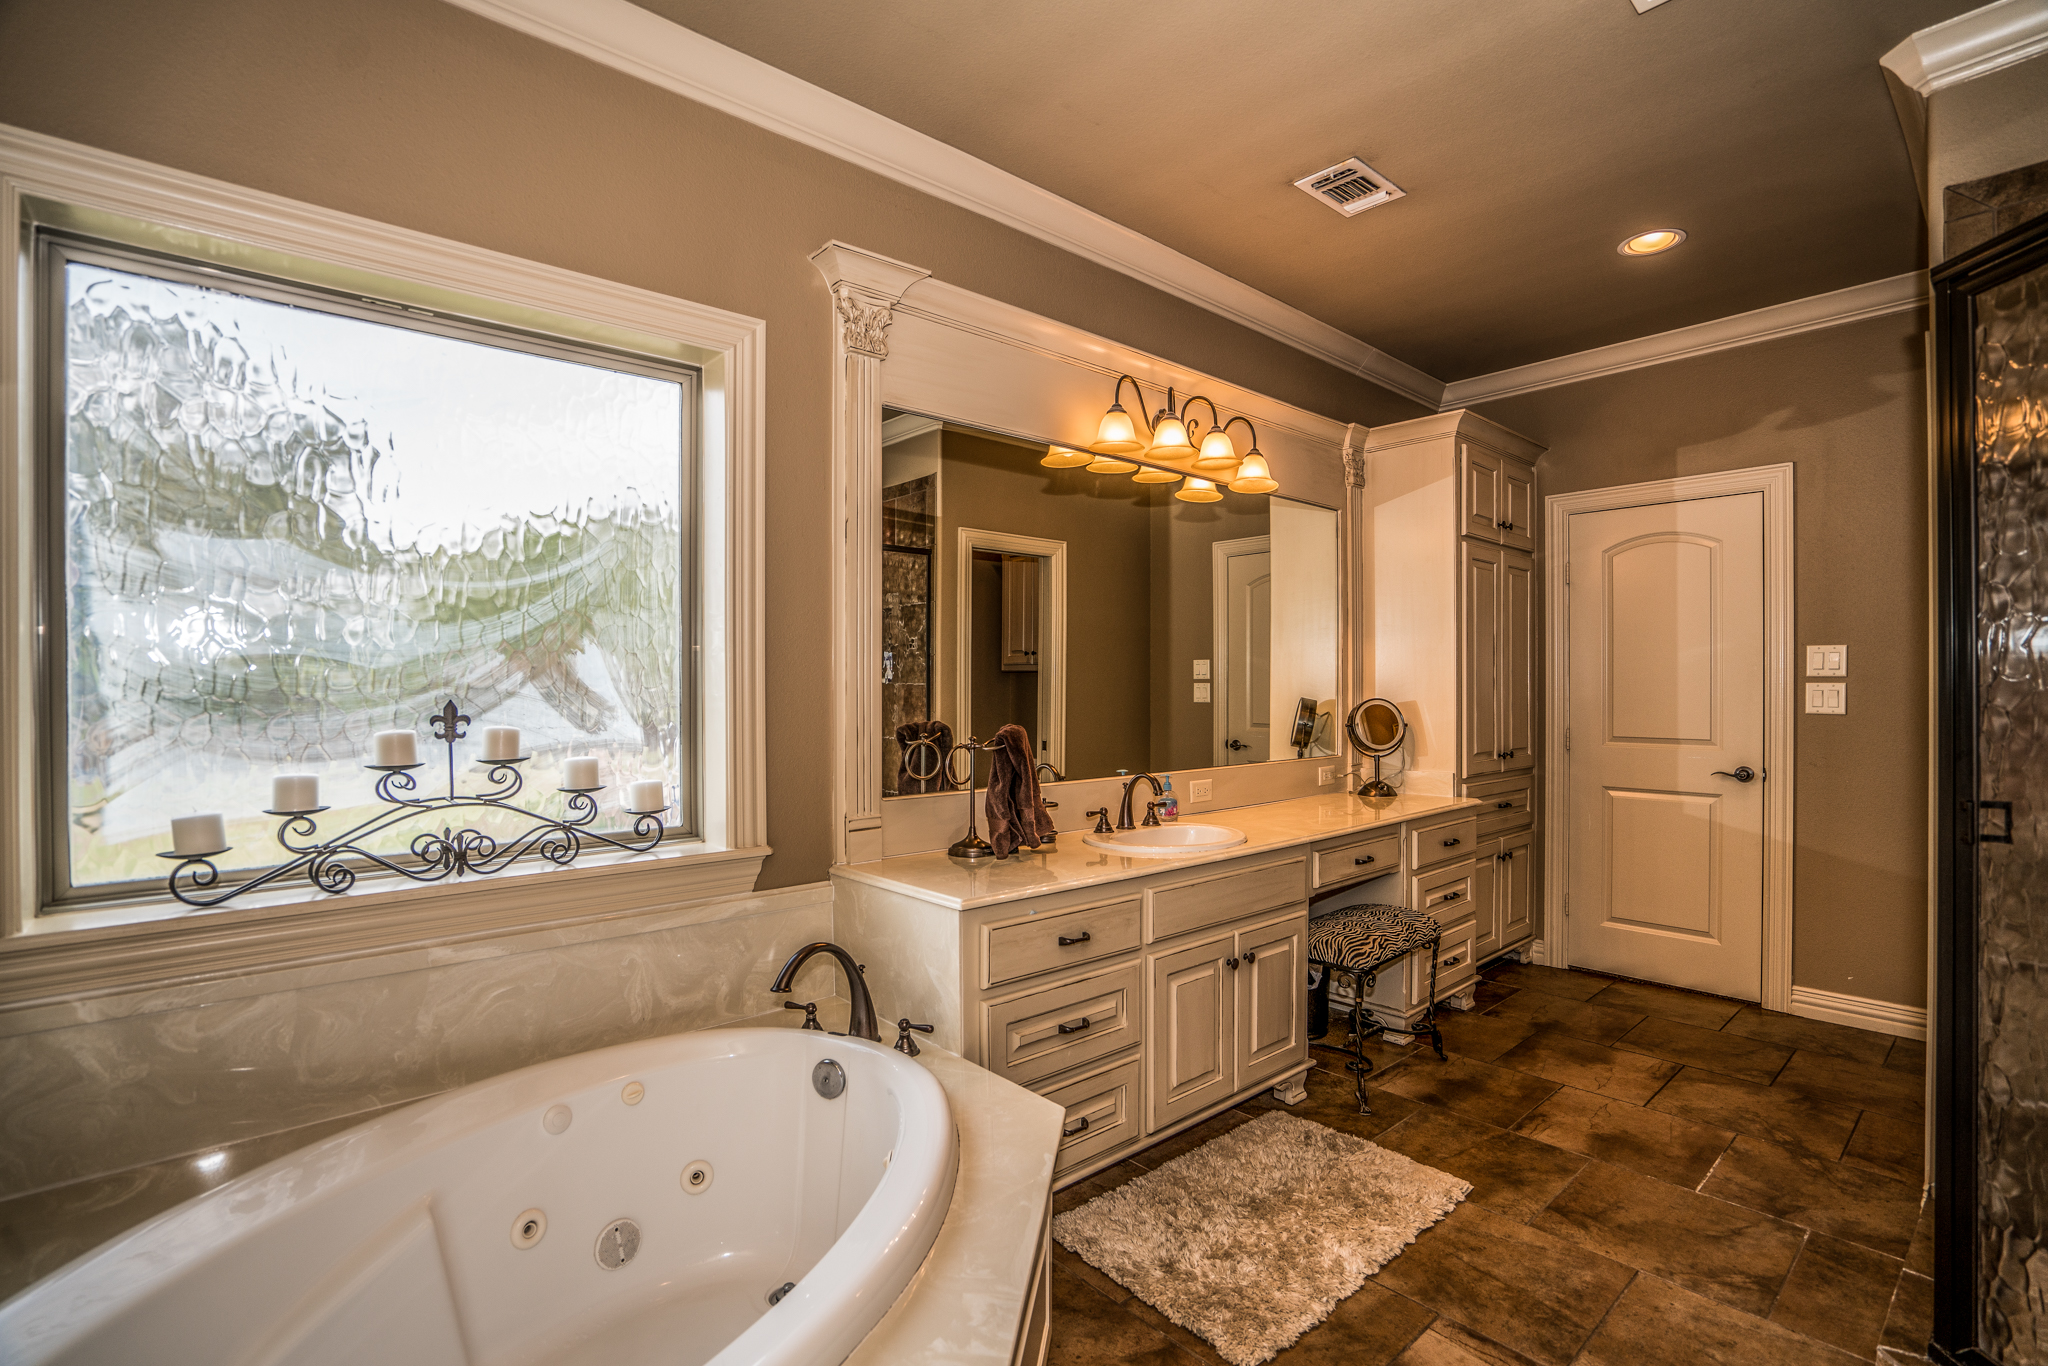 2105-McDade-Longview-TX-75605-Yumba Real Estate Photography in Longview Texas